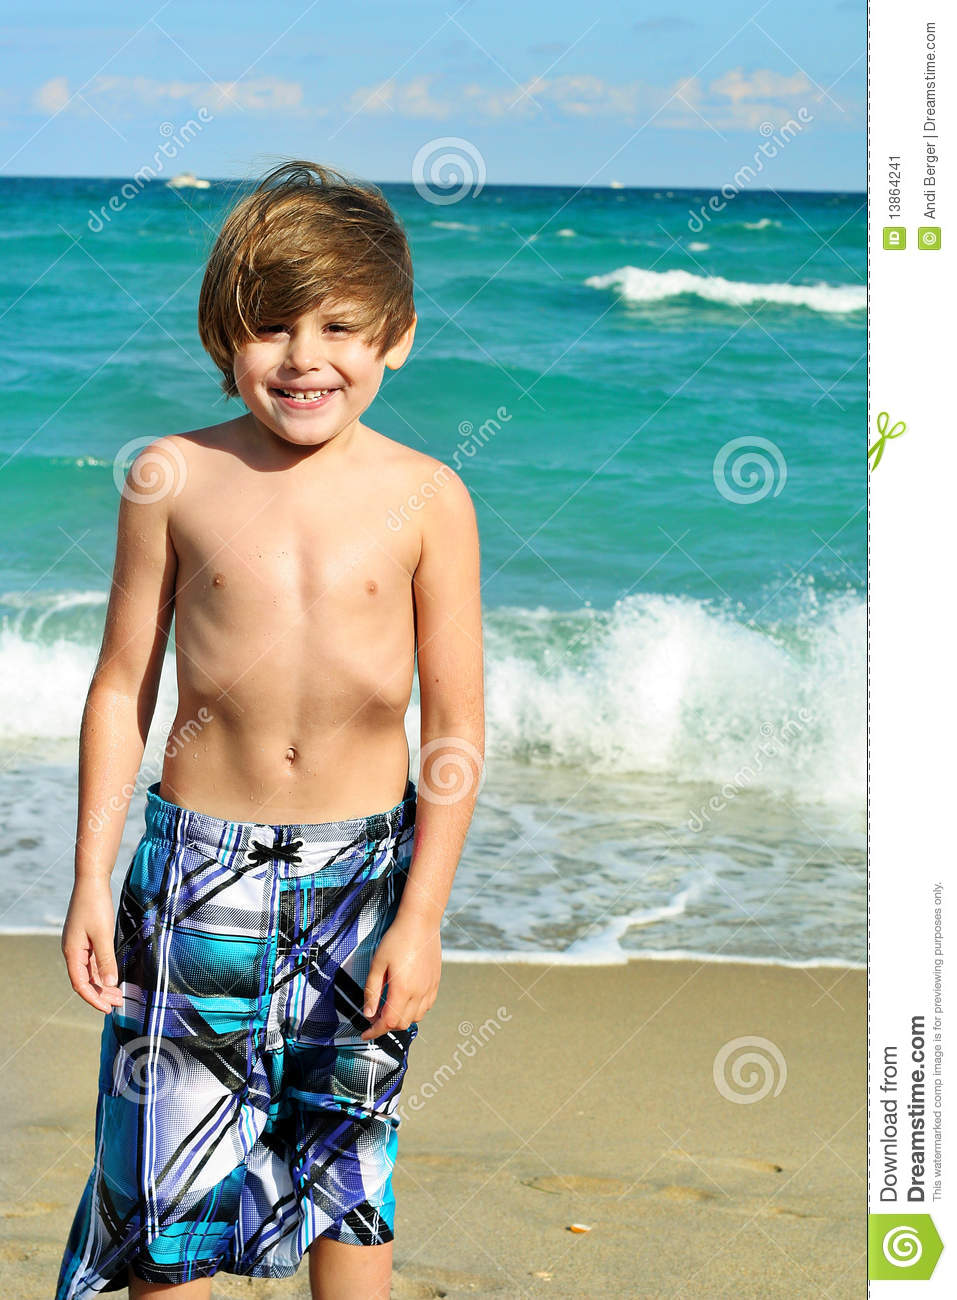 Cute Little Boy At The Beach Stock Image - Image of ...